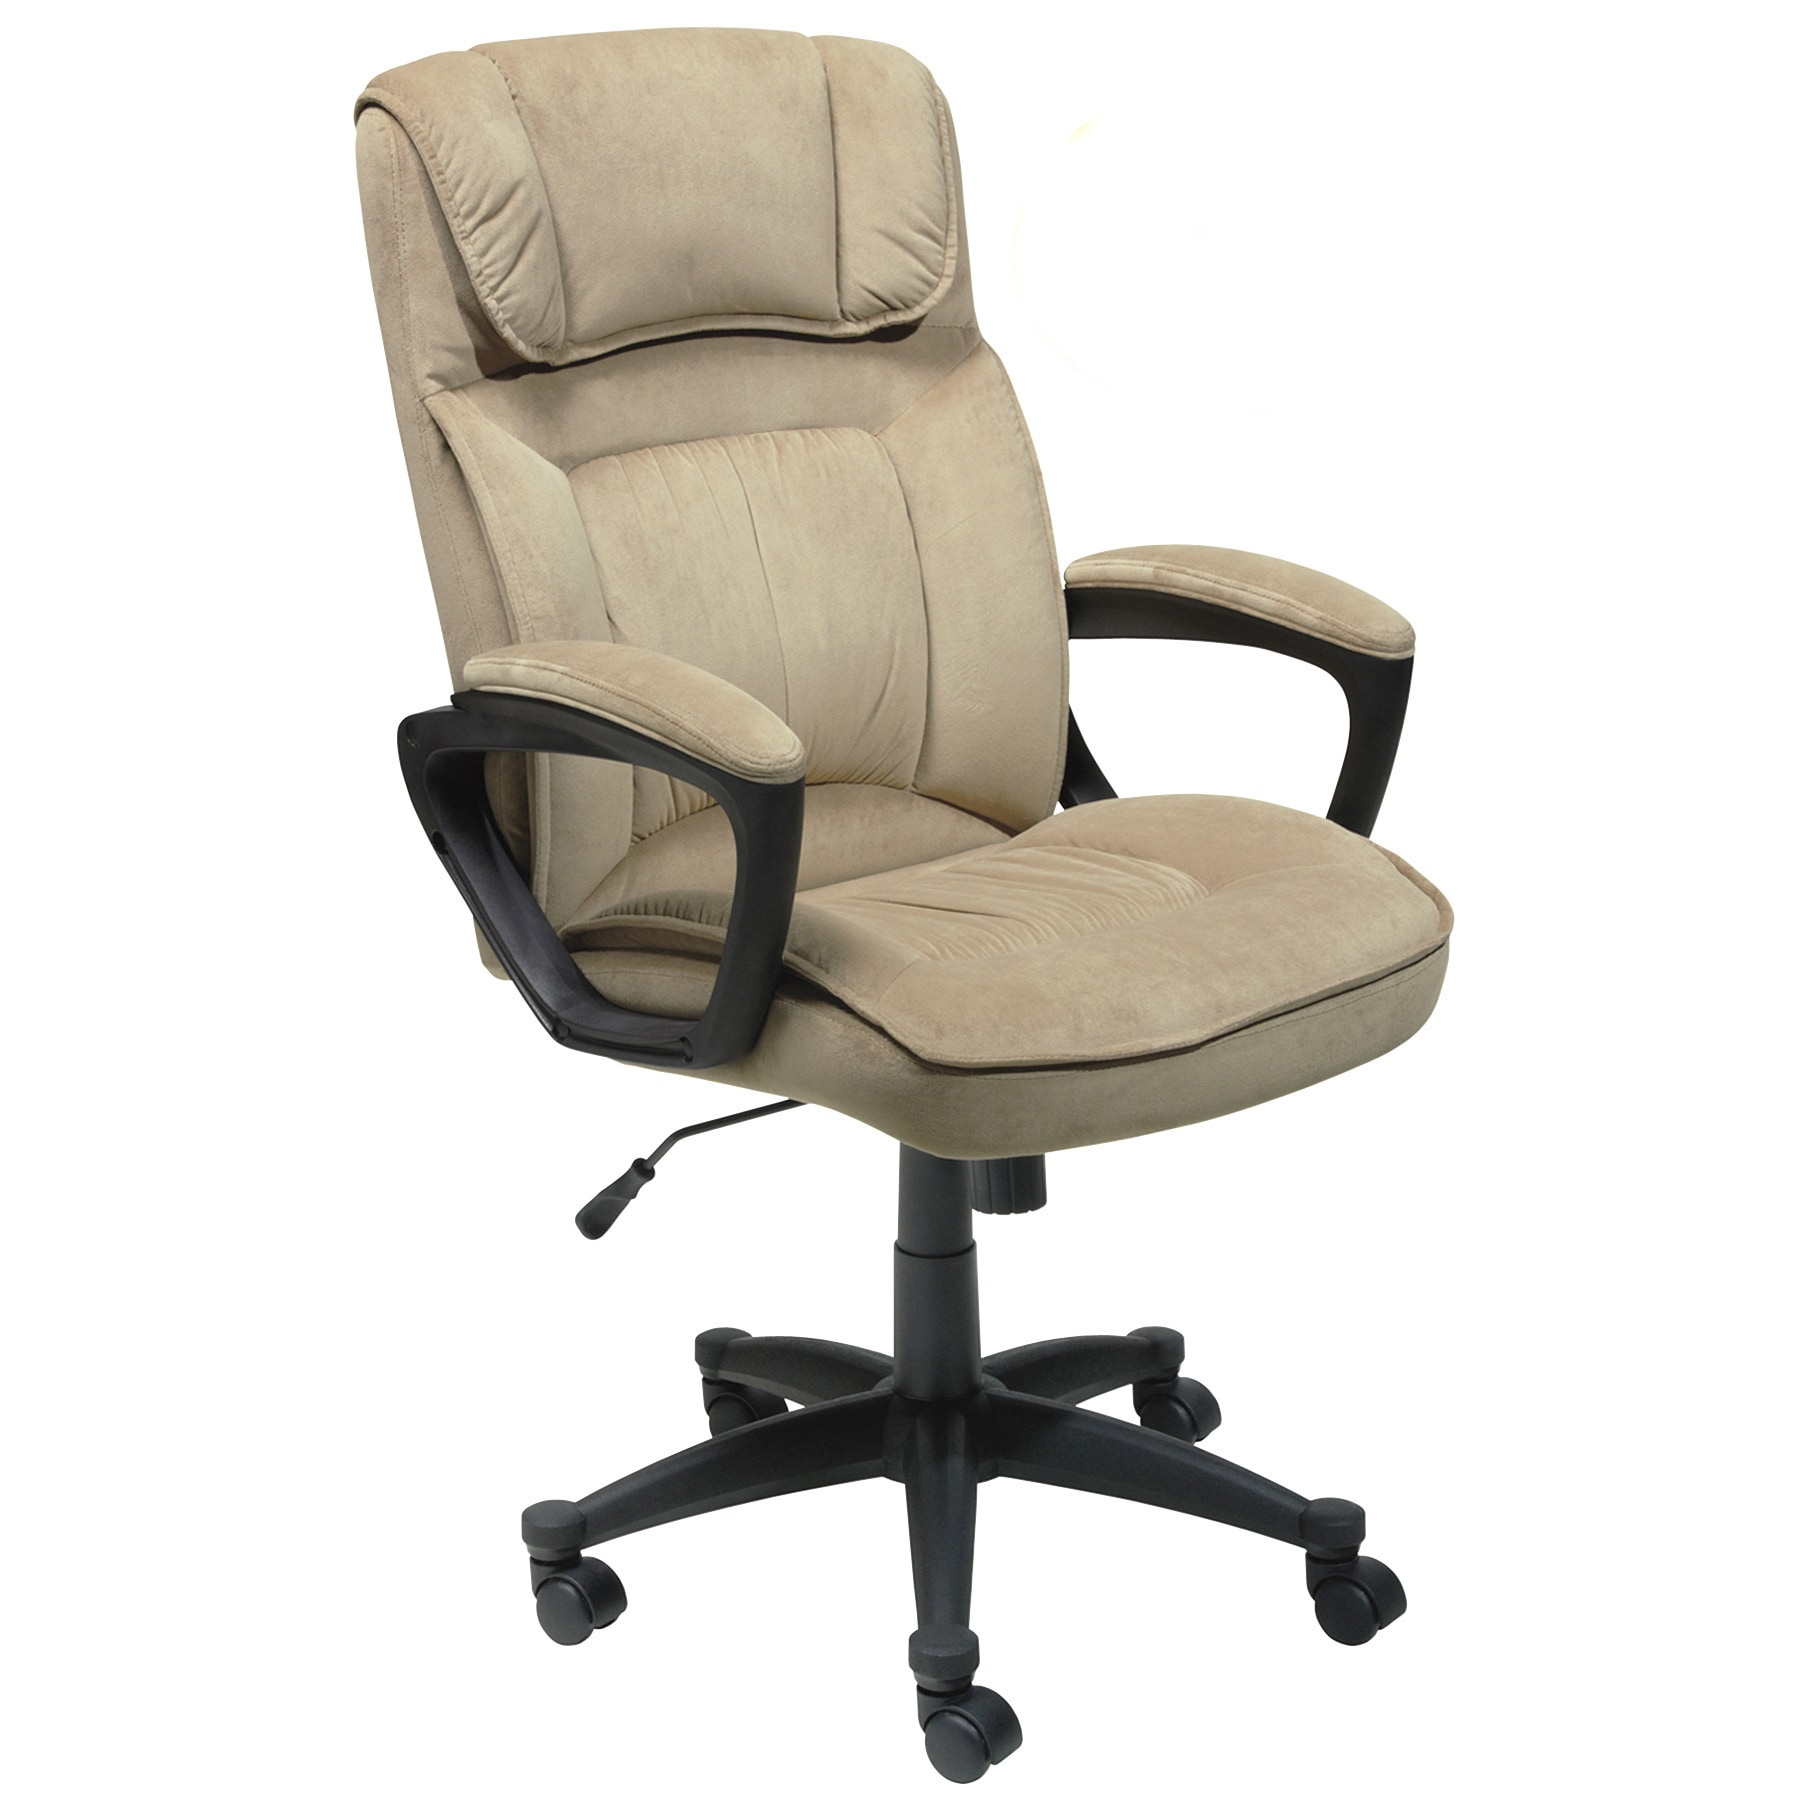 microfiber office chair serta executive office chair serta light beige microfiber executive office chair afcf acb f dee